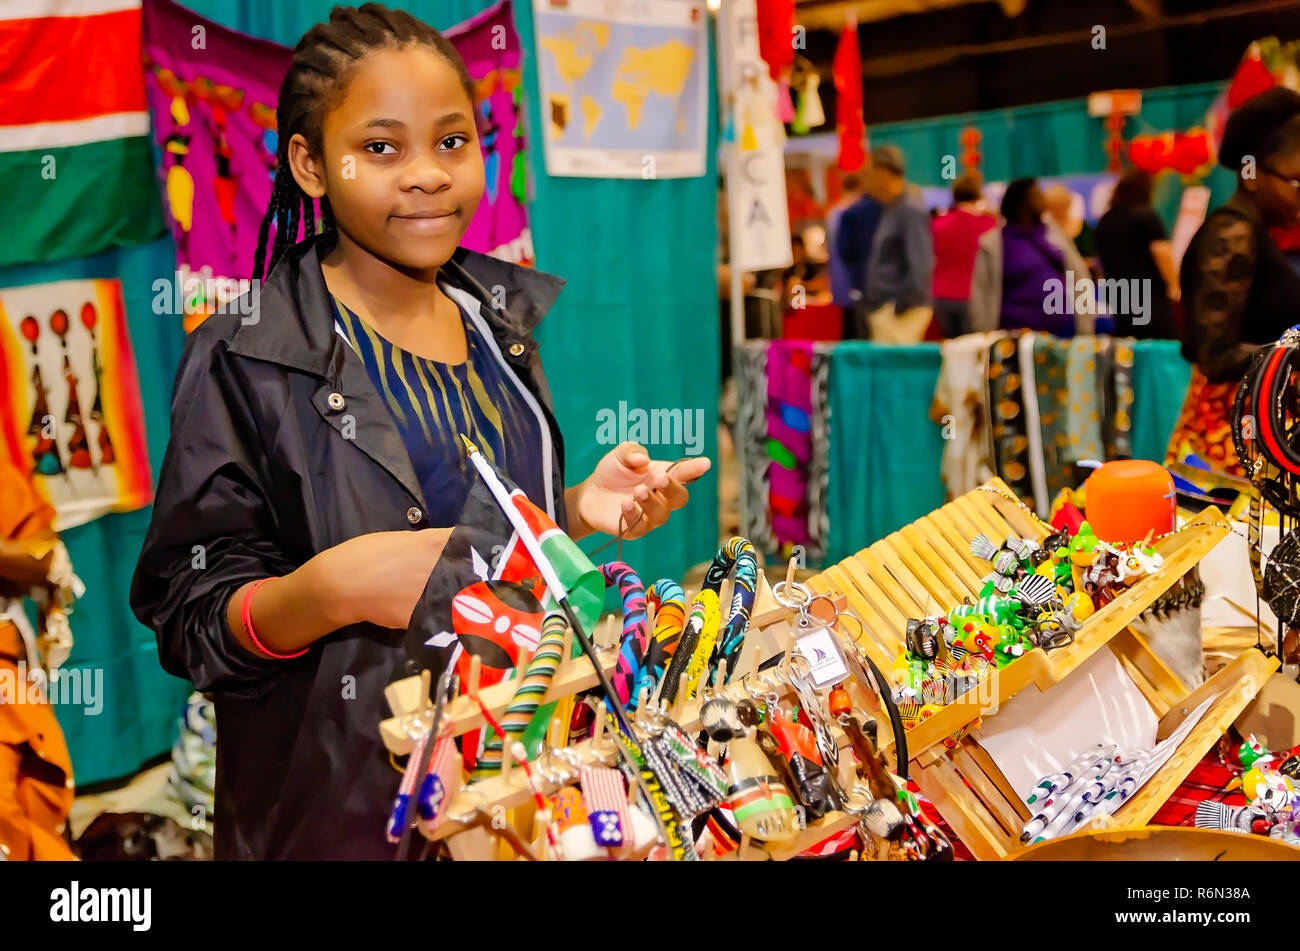 A Kenyan girl sells souvenirs at the 34th annual Mobile International Festival, Nov. 17, 2018, in Mobile, Alabama. Stock Photo